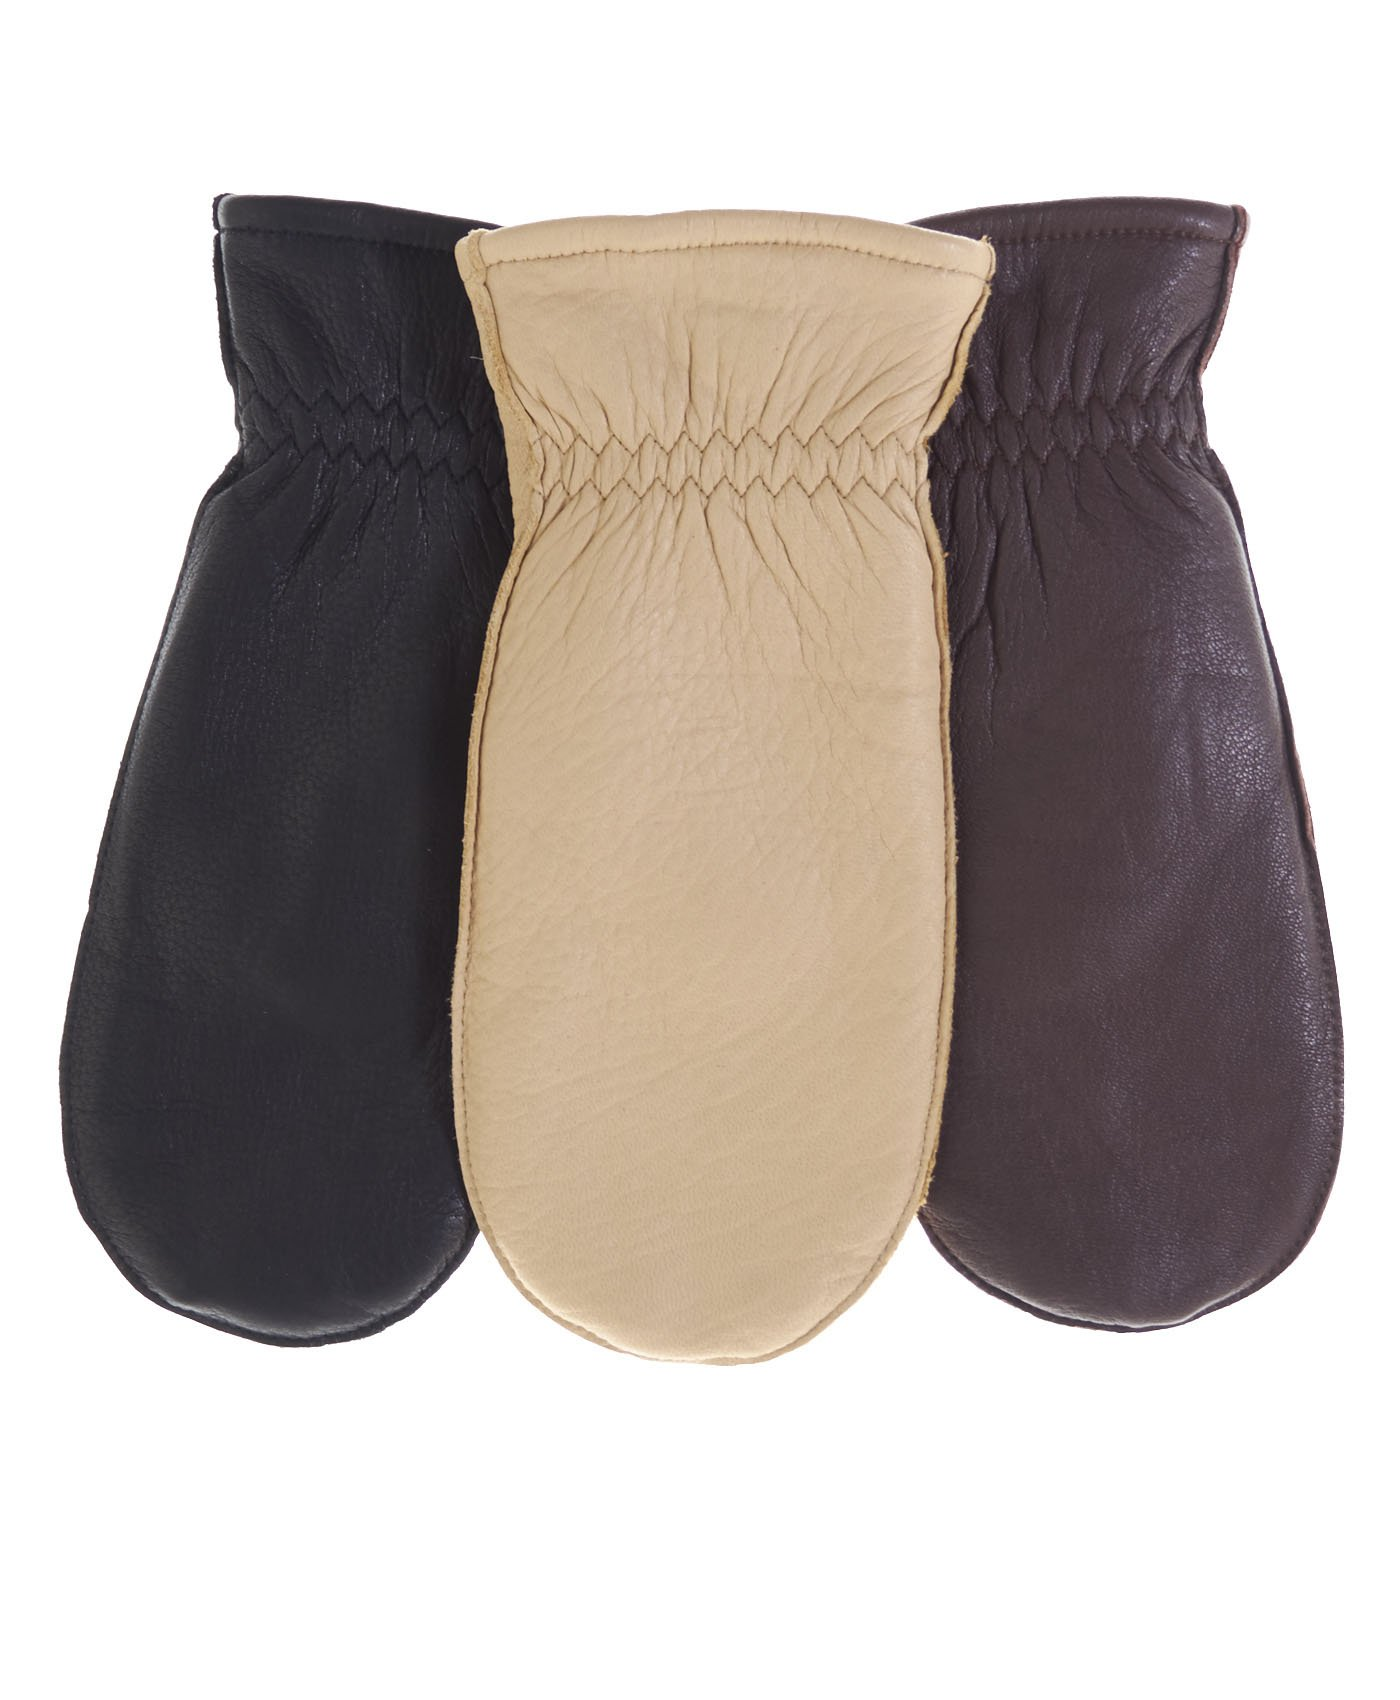 Pratt and Hart Women's Winter Deerskin Leather Mittens with Finger Liners Size M Color Black by Pratt and Hart